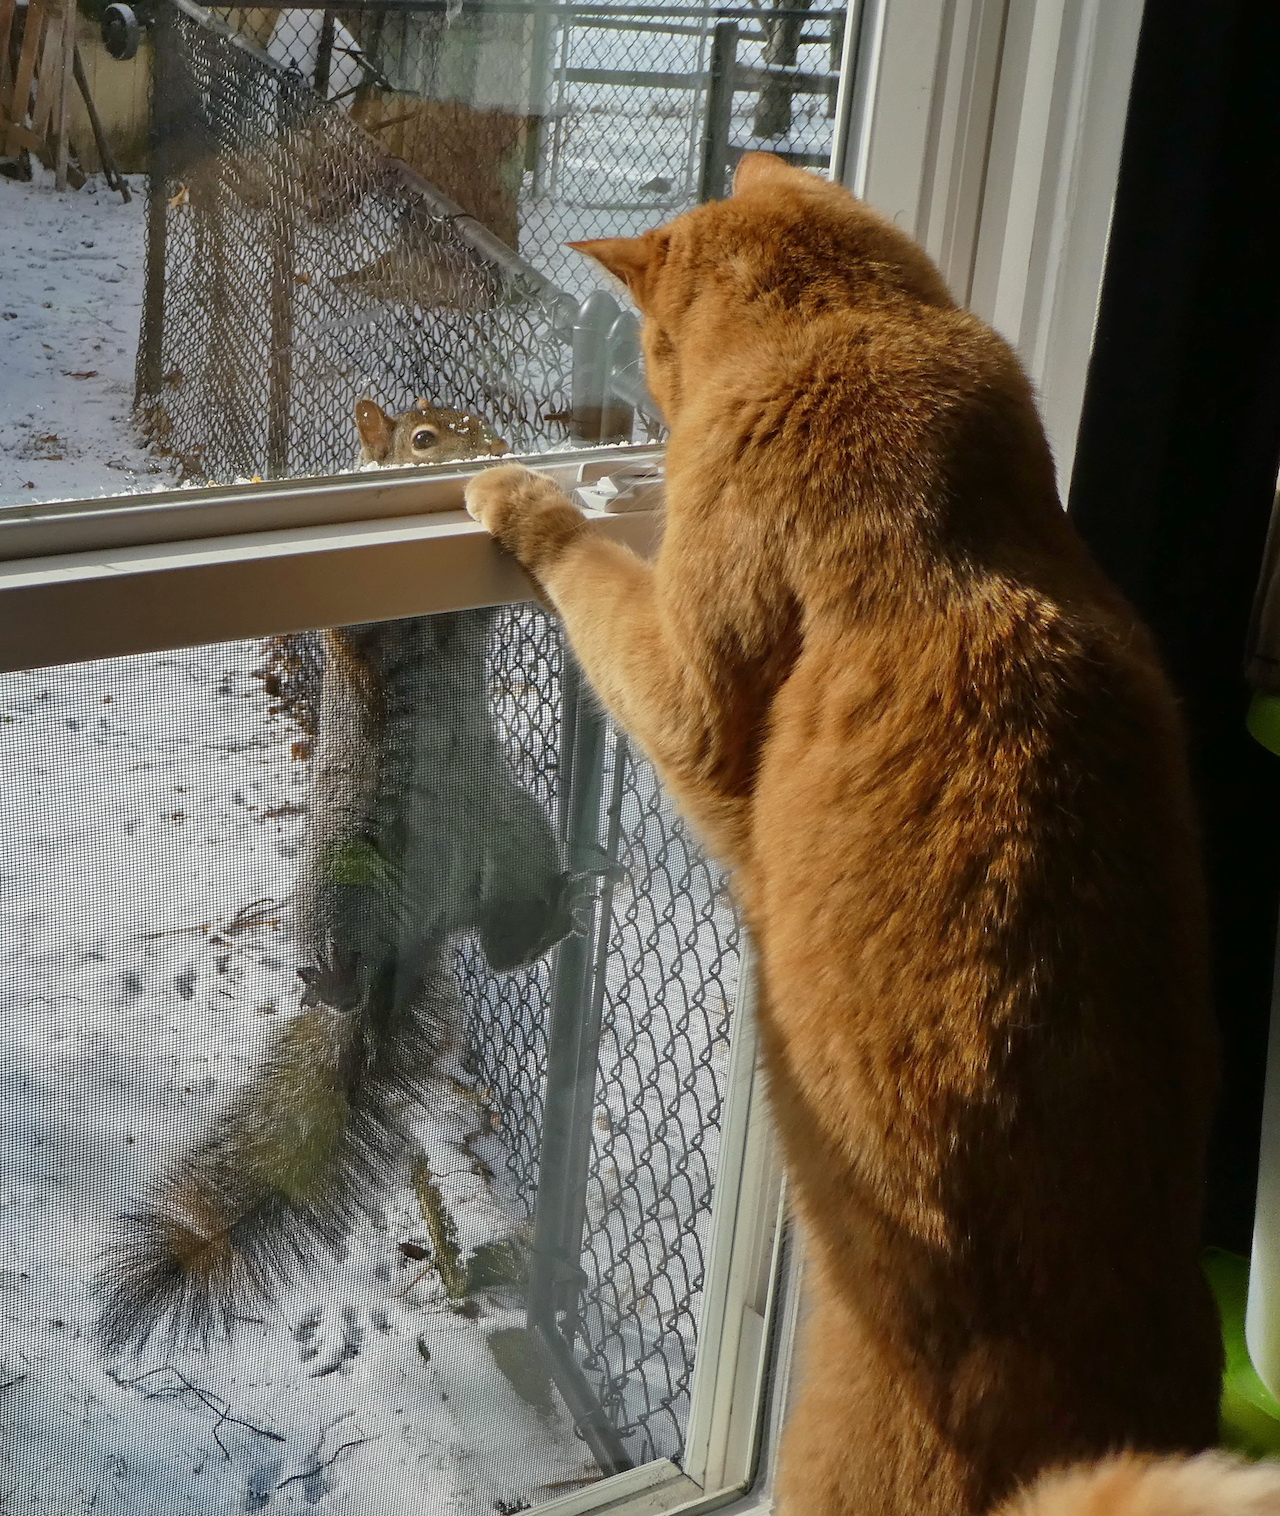 Standoff at the window (photo)